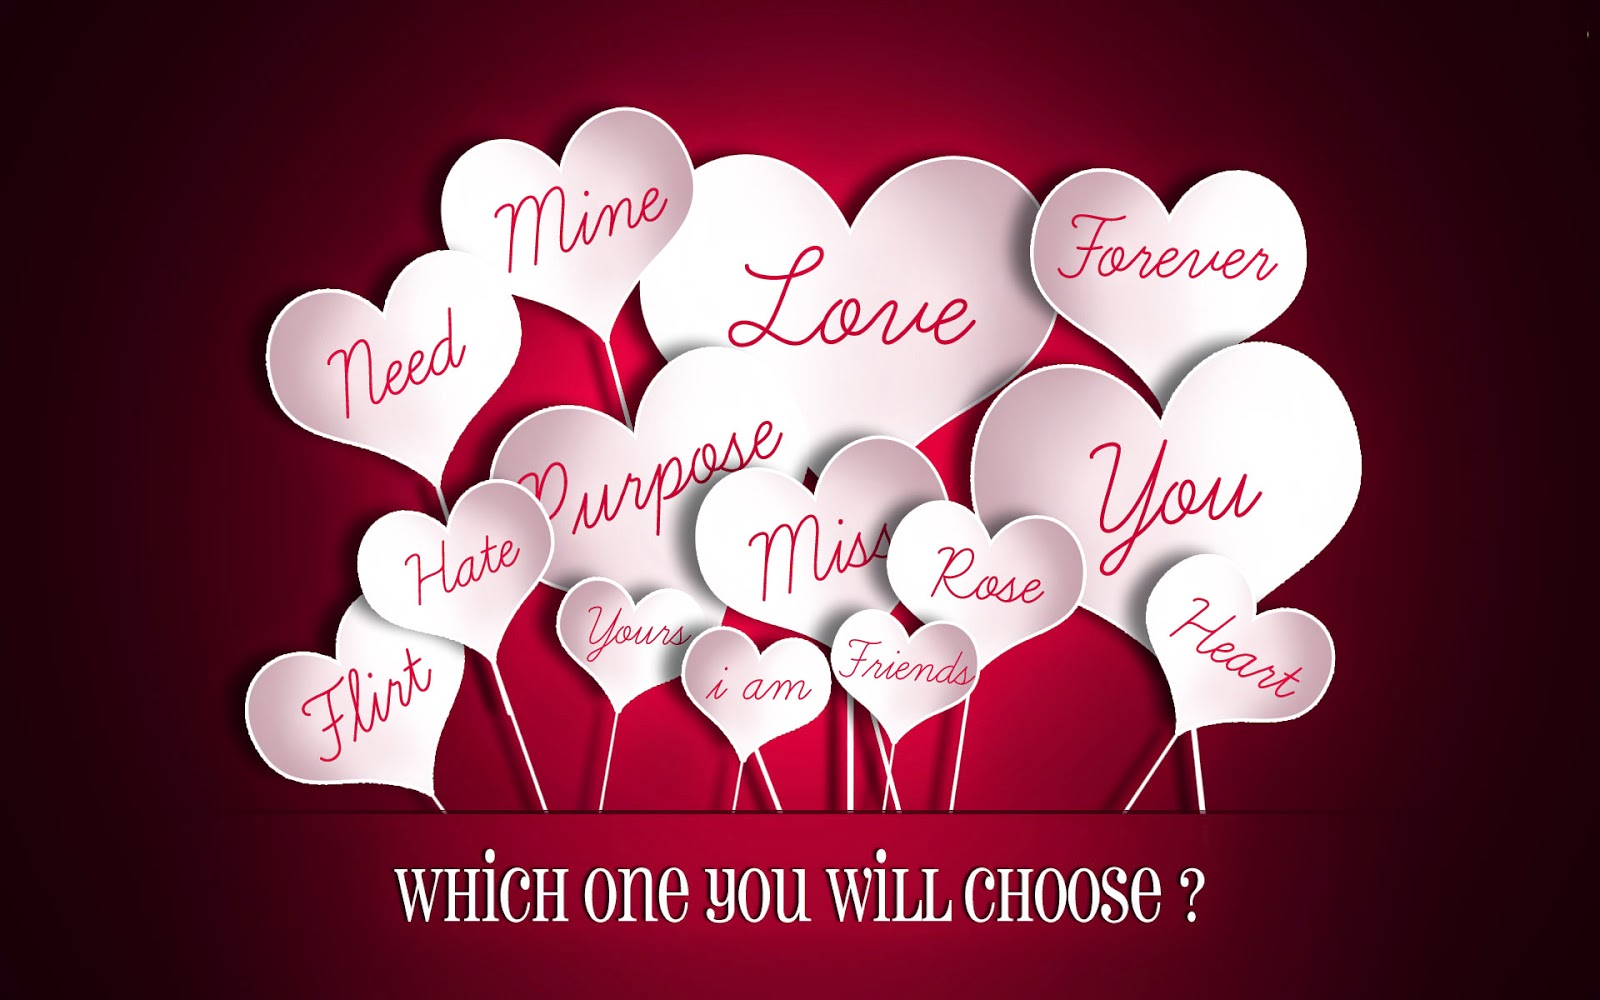 Hd wallpaper you need - Valentines Day Special Hd Wallpaper